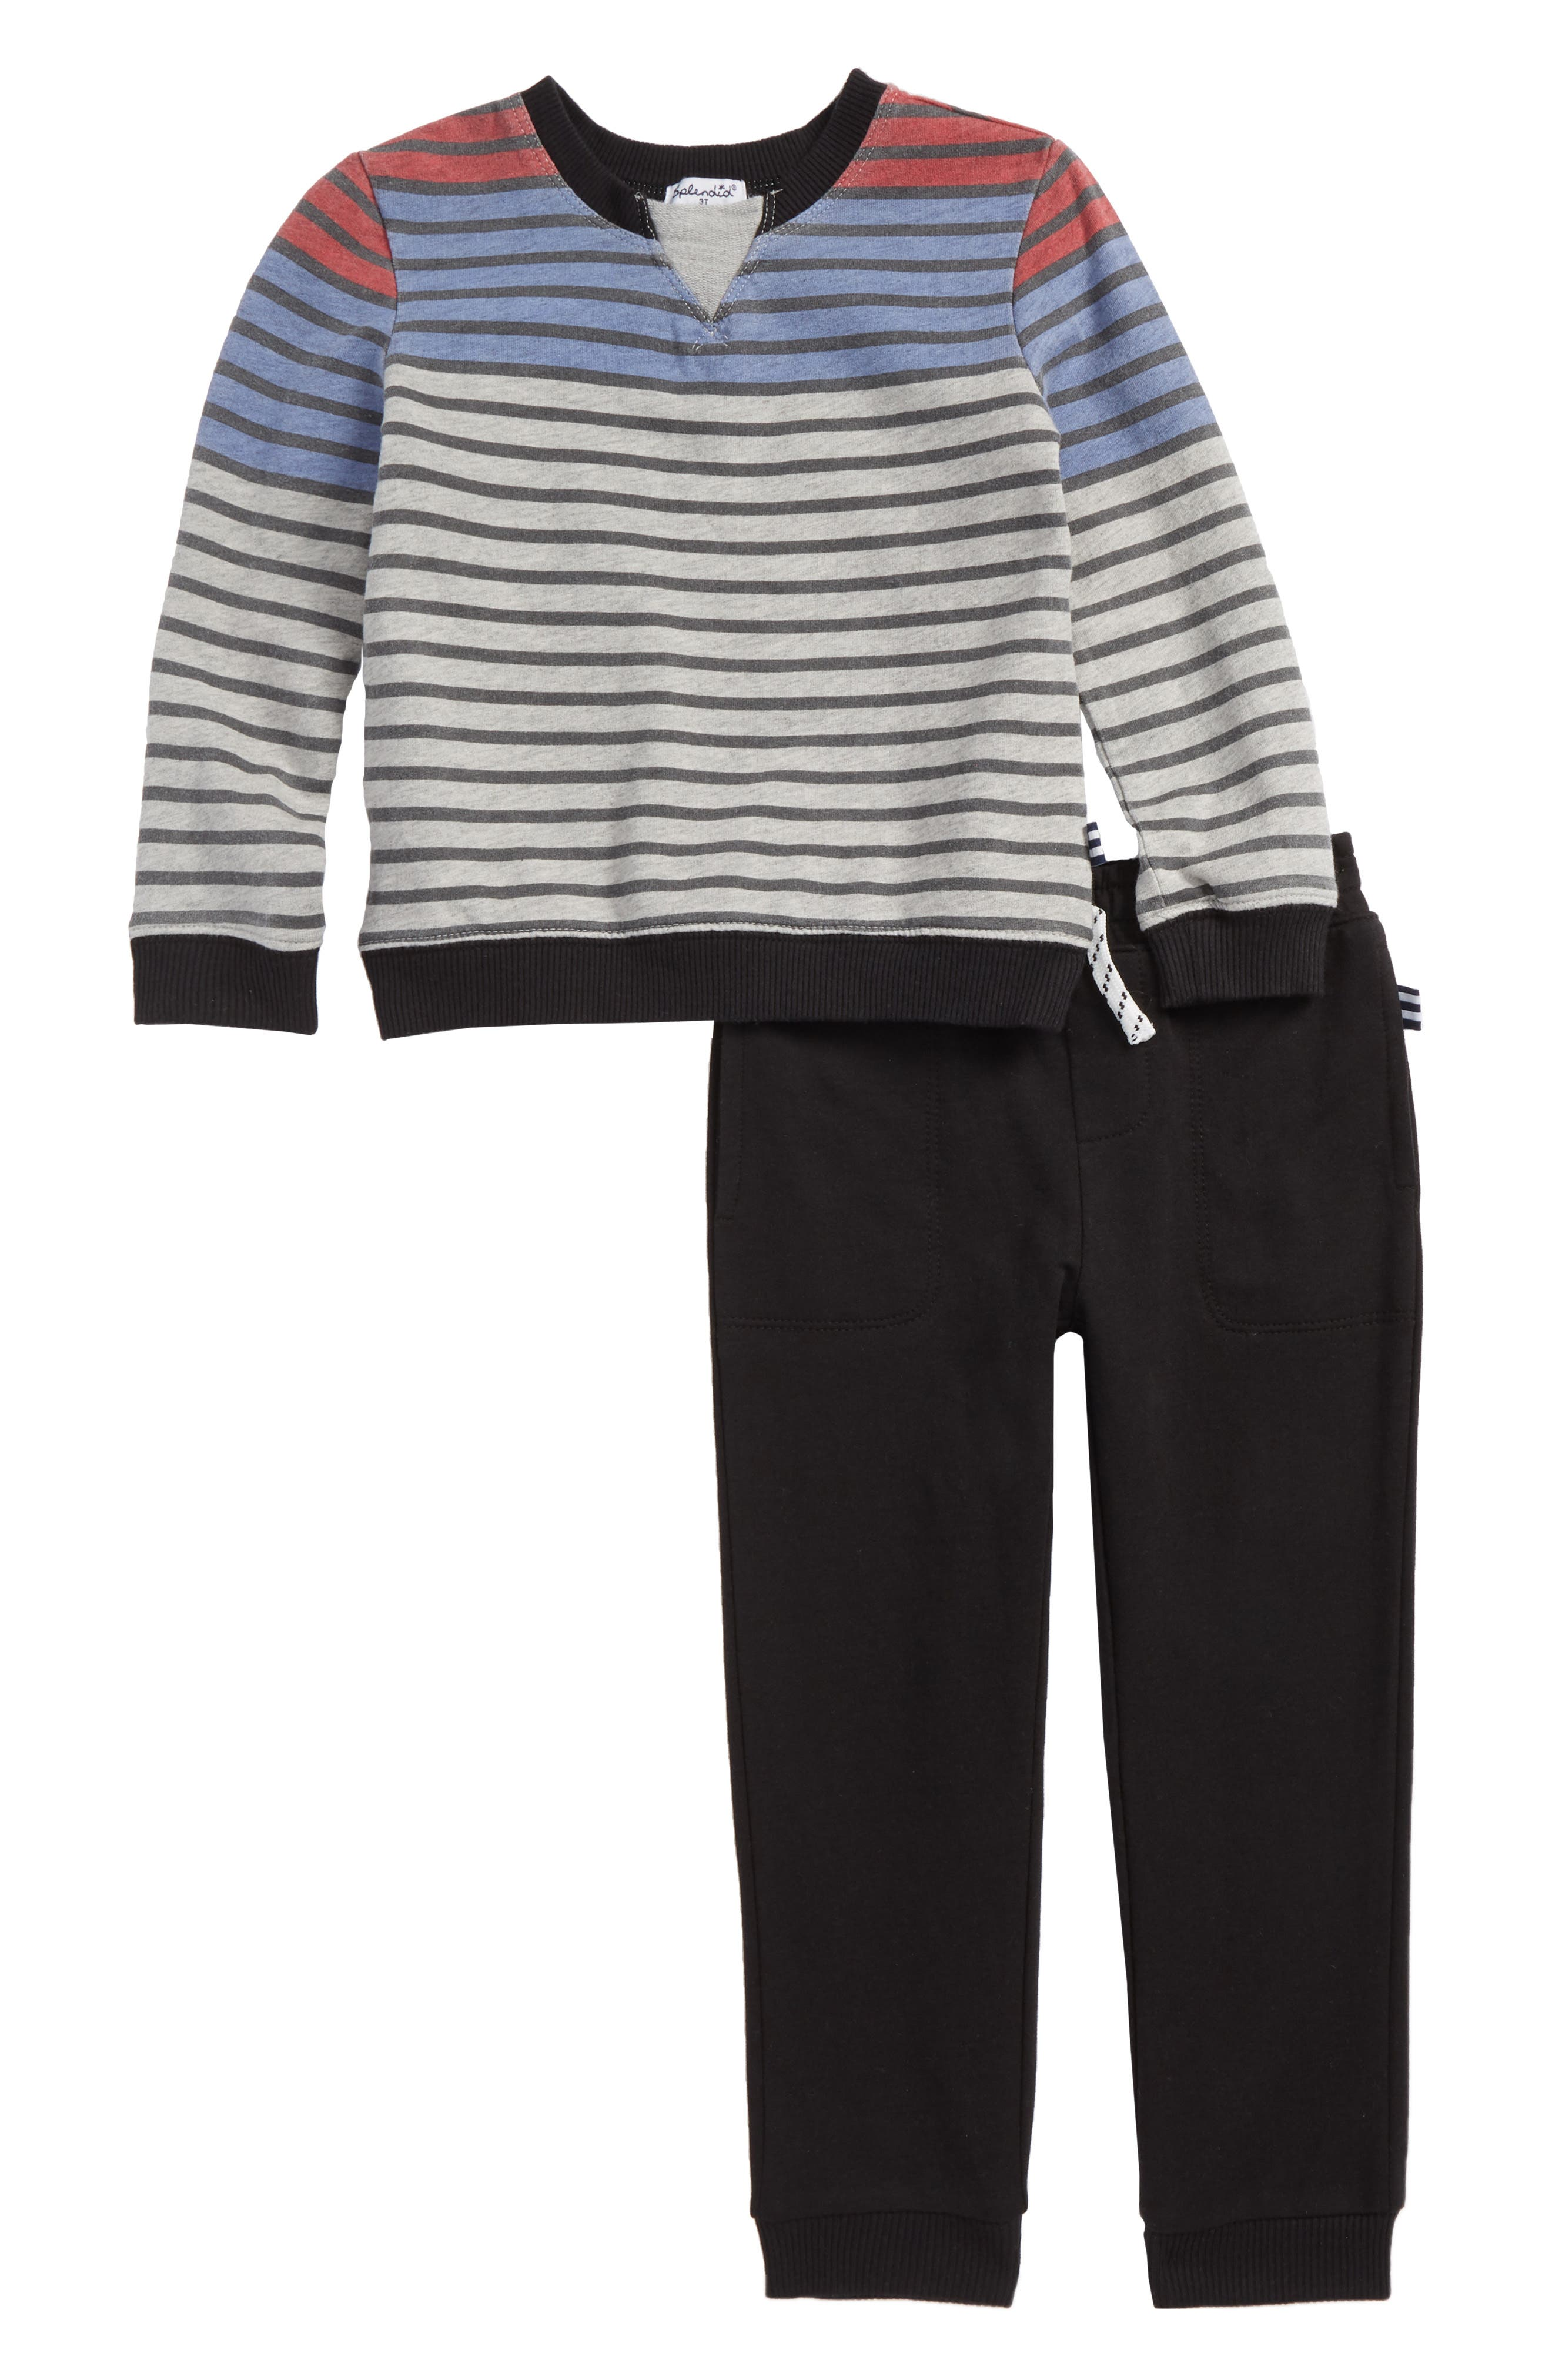 Stripe French Terry Sweatshirt & Pants Set,                             Main thumbnail 1, color,                             Light Heather Grey